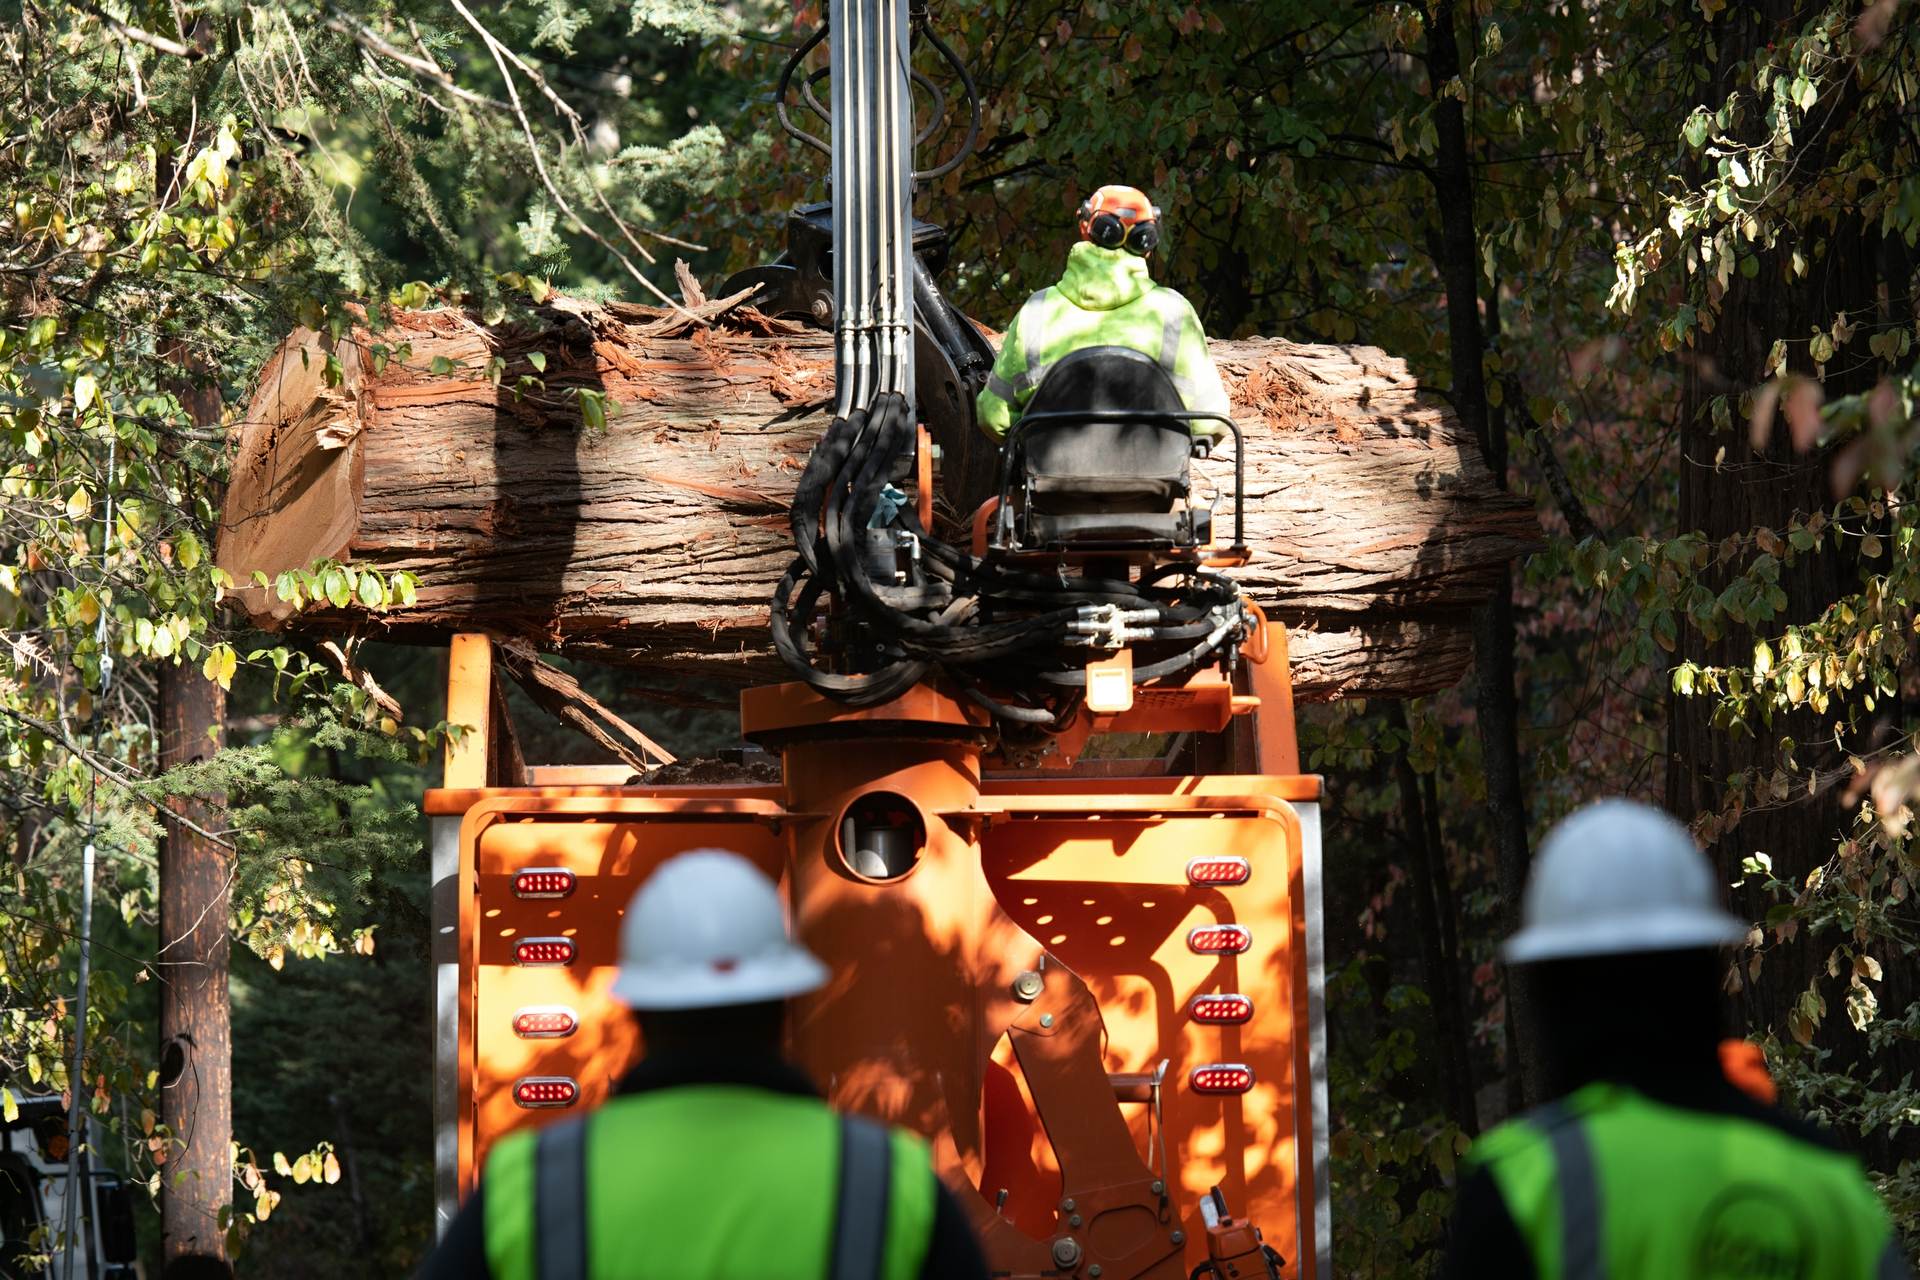 Crews haul away part of a tree that had to be removed because it posed a hazard to SCE power lines.